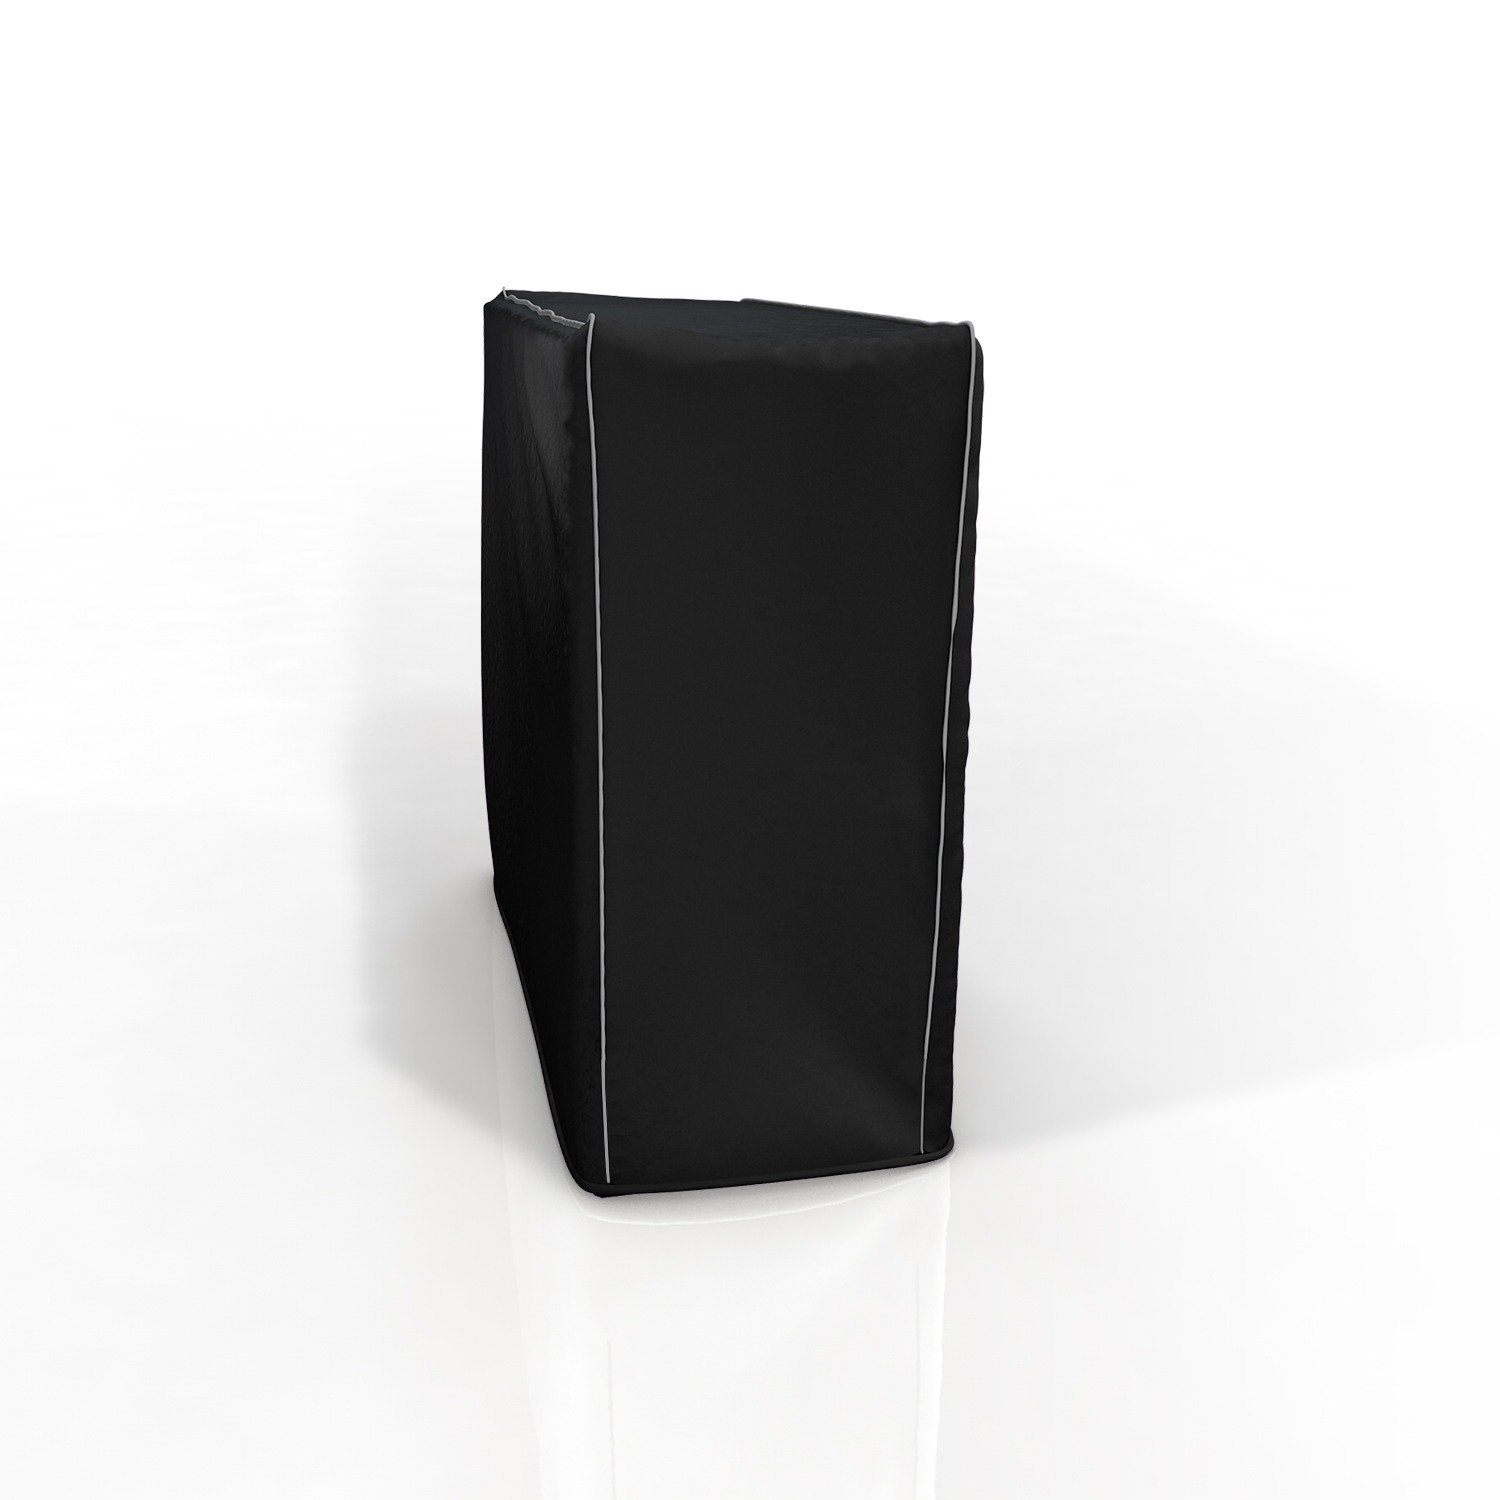 INTERPRObrand Dust Cover for CPU Tower - Medium Slim: 12.5''(H) x 4.5''(W) x 15''(D).